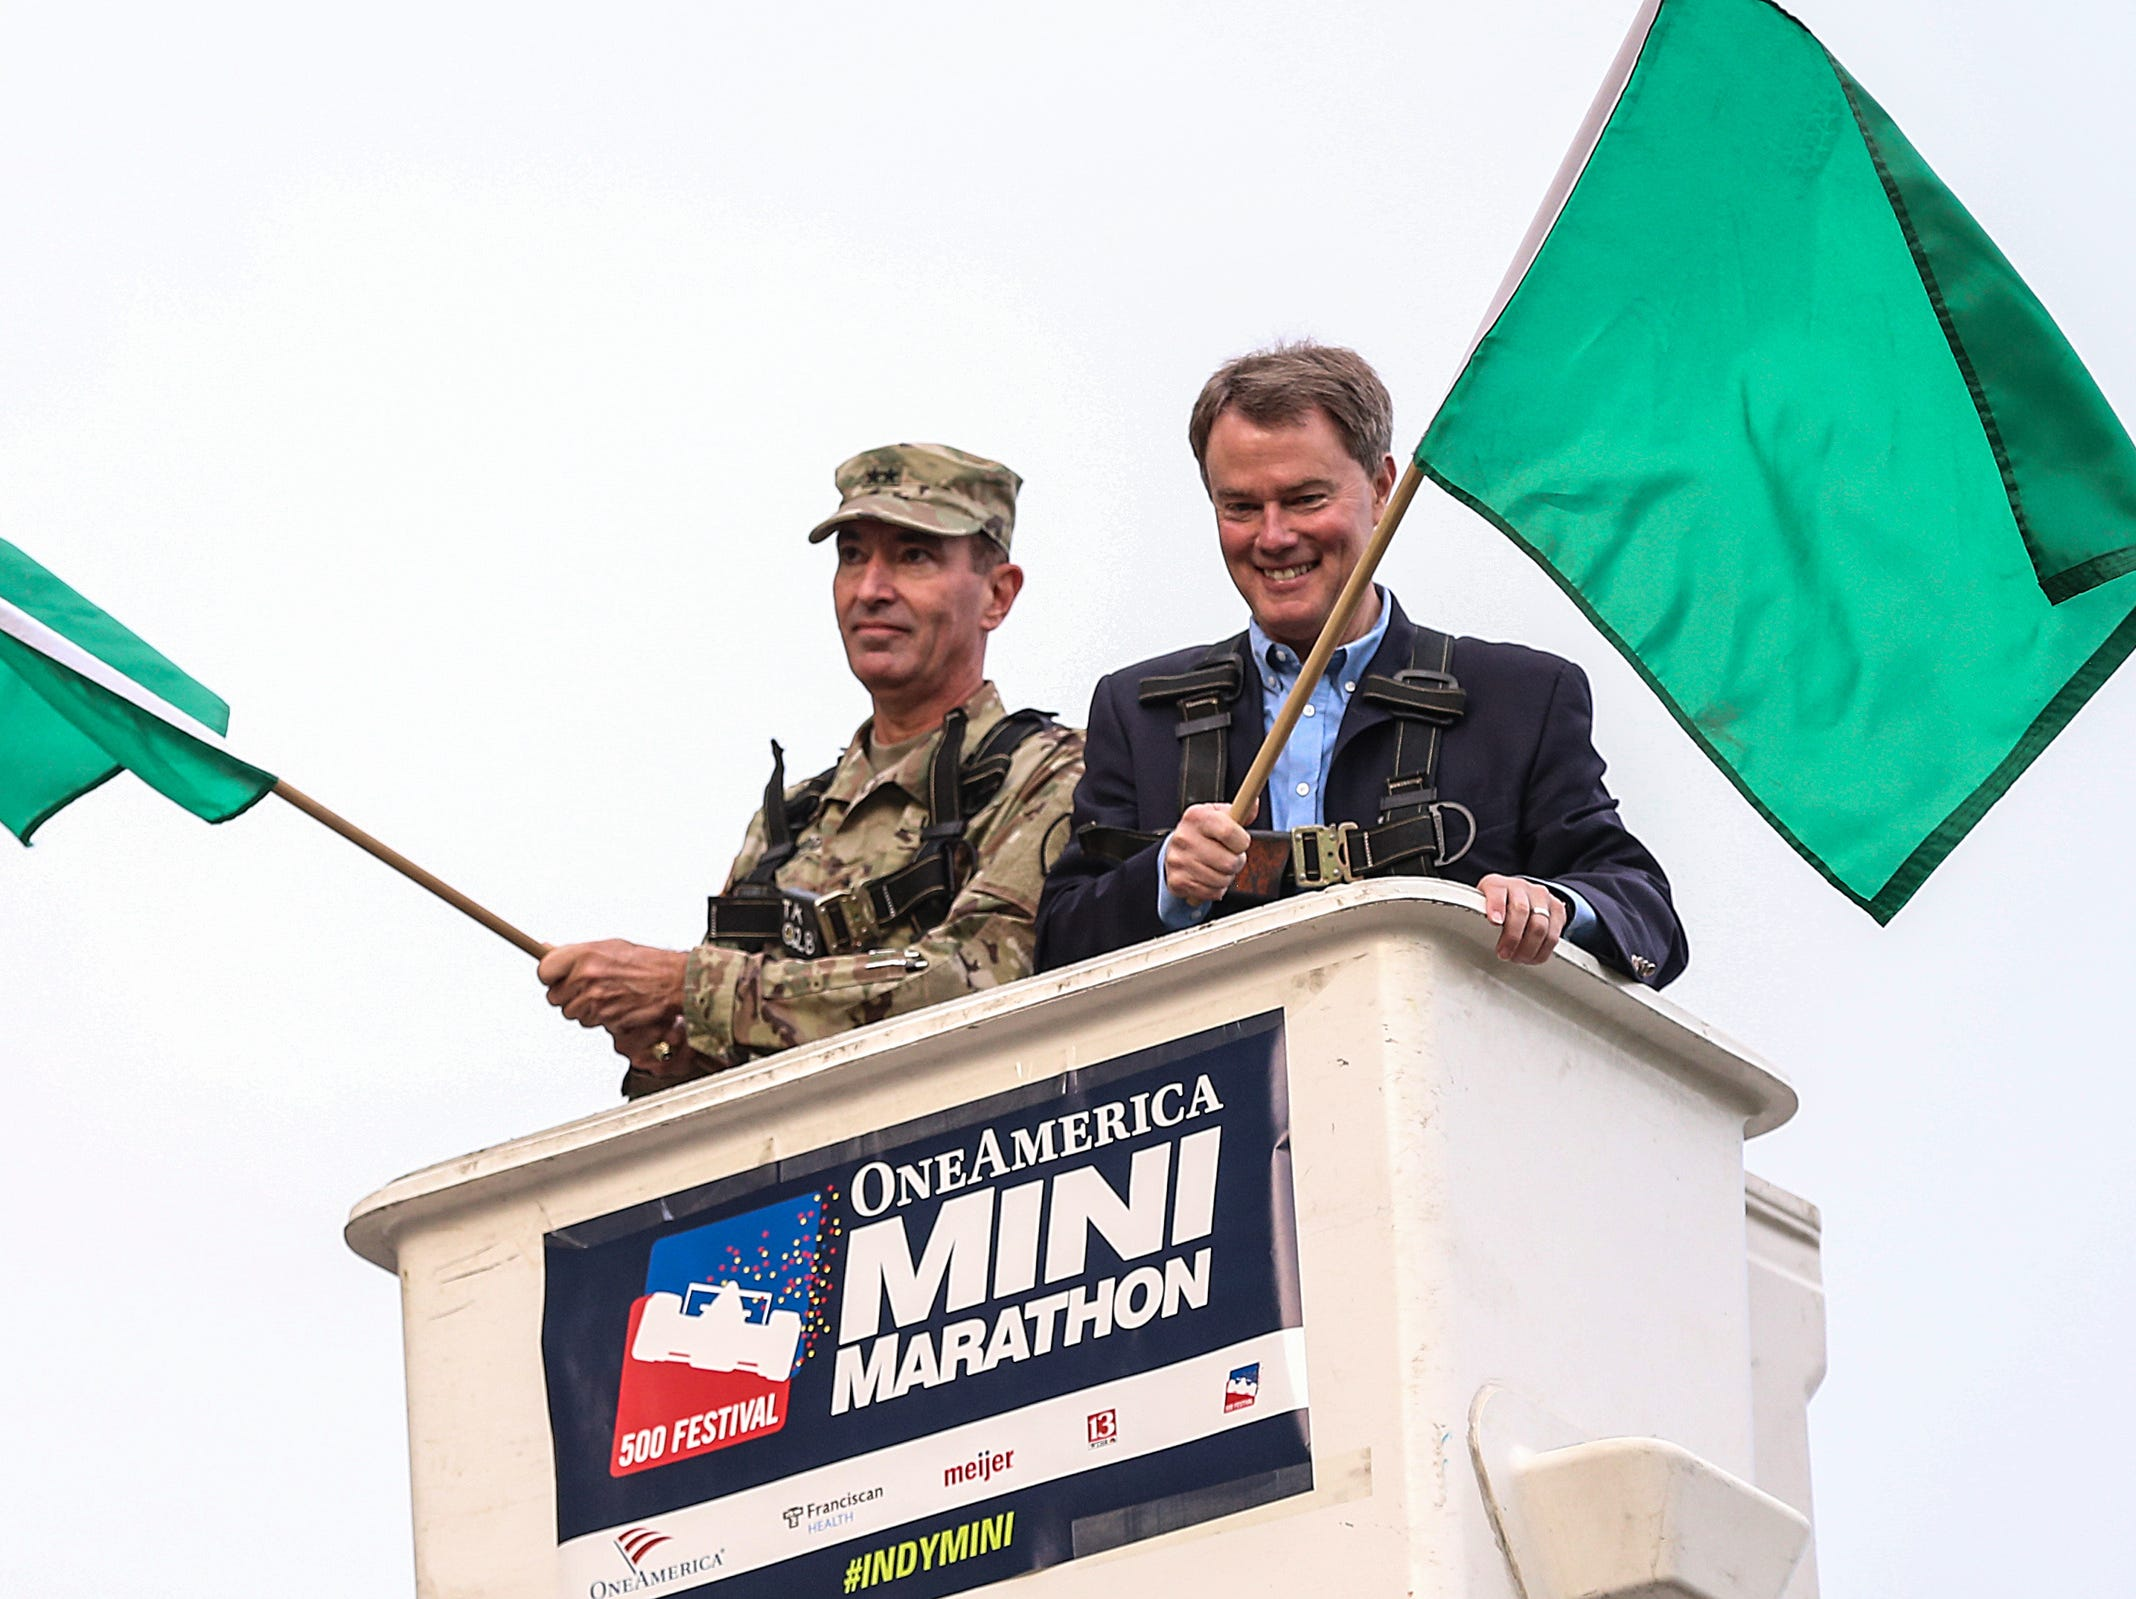 Mayor Joe Hogsett, right, waves a green flag above the starting line at the OneAmerica 500 Festival Mini-Marathon in Indianapolis, Saturday, May 5, 2018.